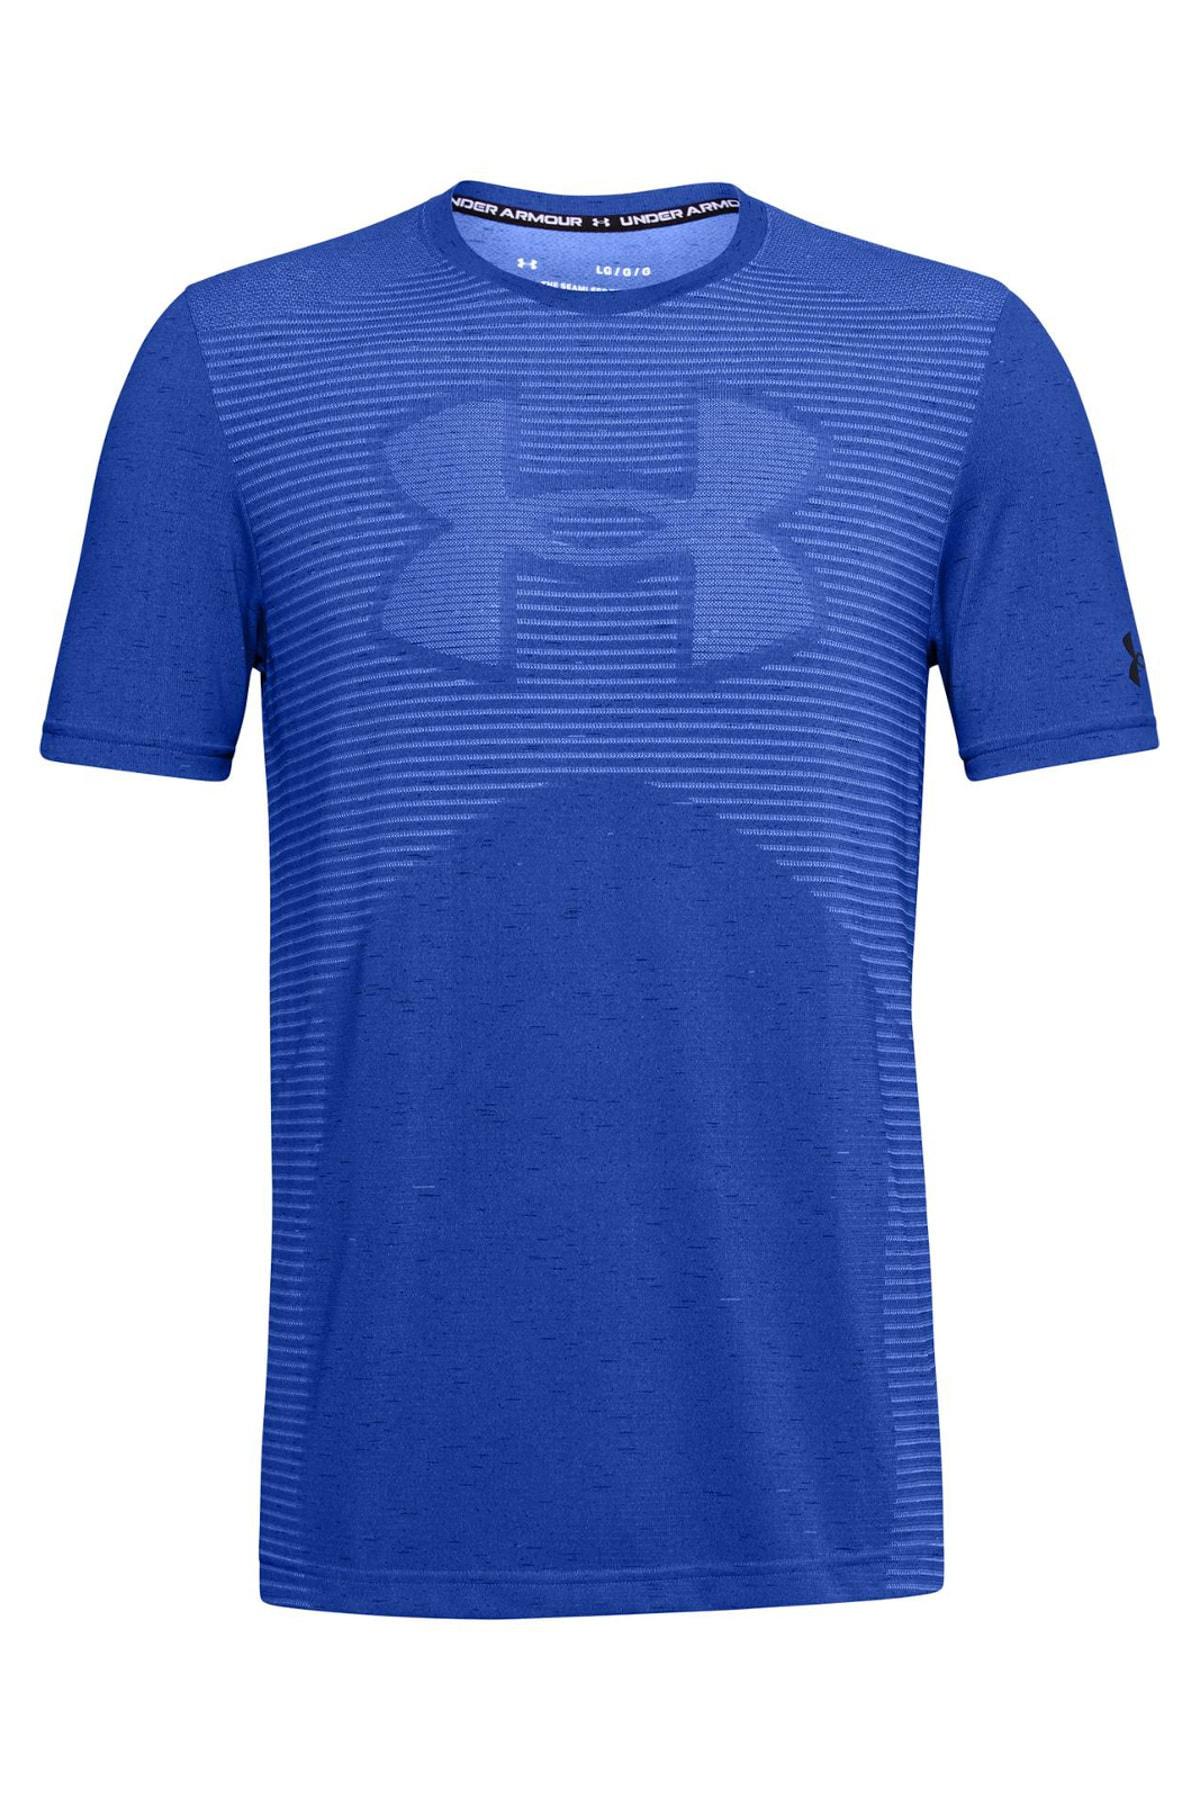 Under Armour Erkek Spor T-Shirt - Ua Seamless Logo Ss - 1356798-401 1